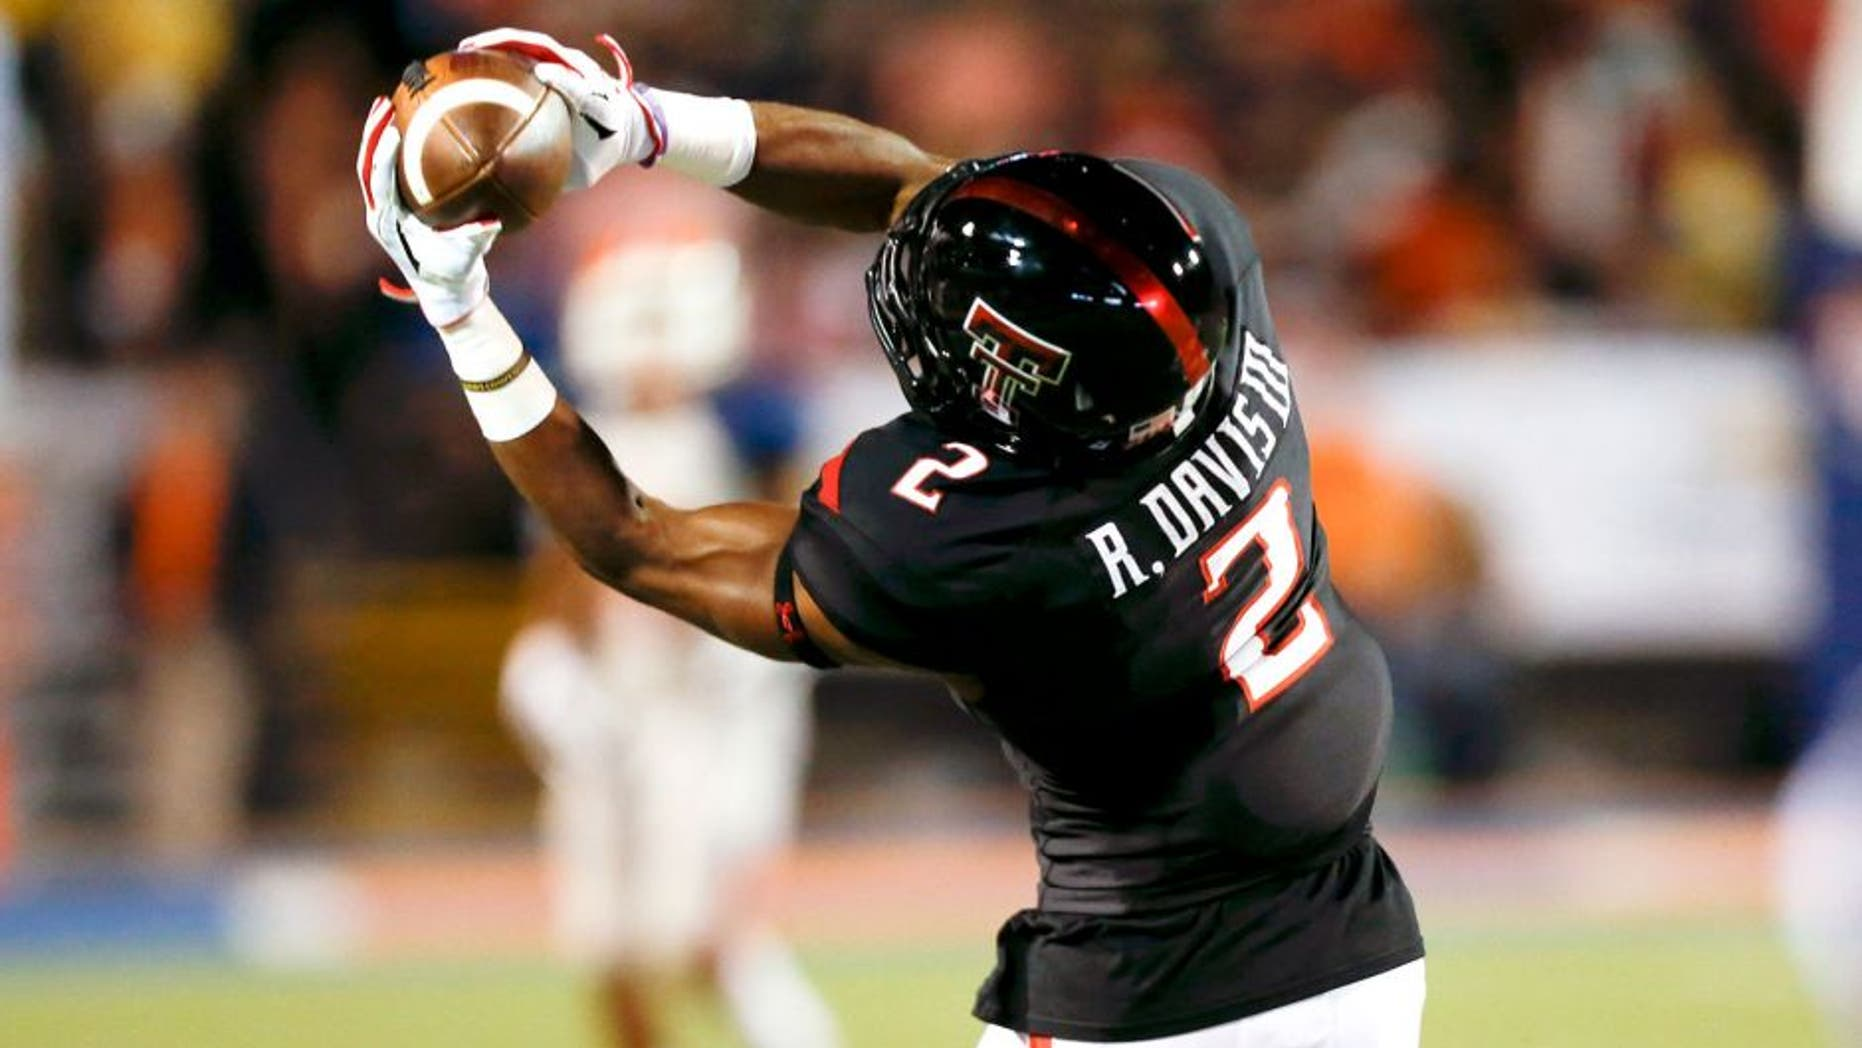 Sep 6, 2014; El Paso, TX, USA; Texas Tech Red Raiders wide receiver Reginald Davis (2) catches a ball against the UTEP Miners defense at Sun Bowl Stadium. Mandatory Credit: Ivan Pierre Aguirre-USA TODAY Sports